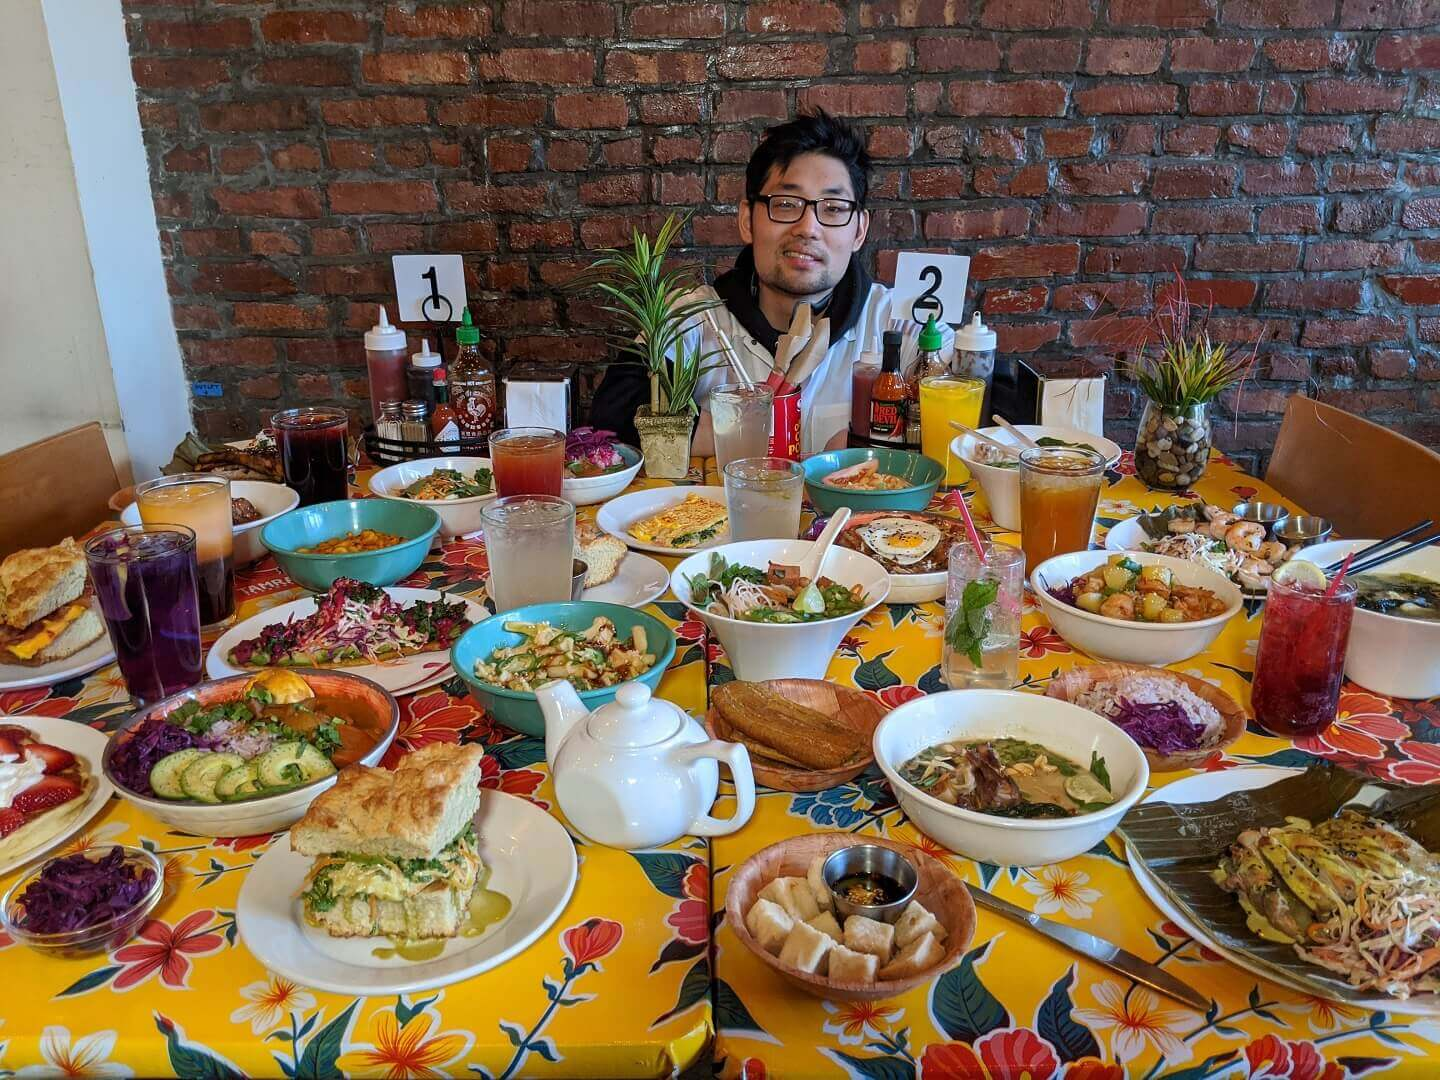 A table full of different plates of food